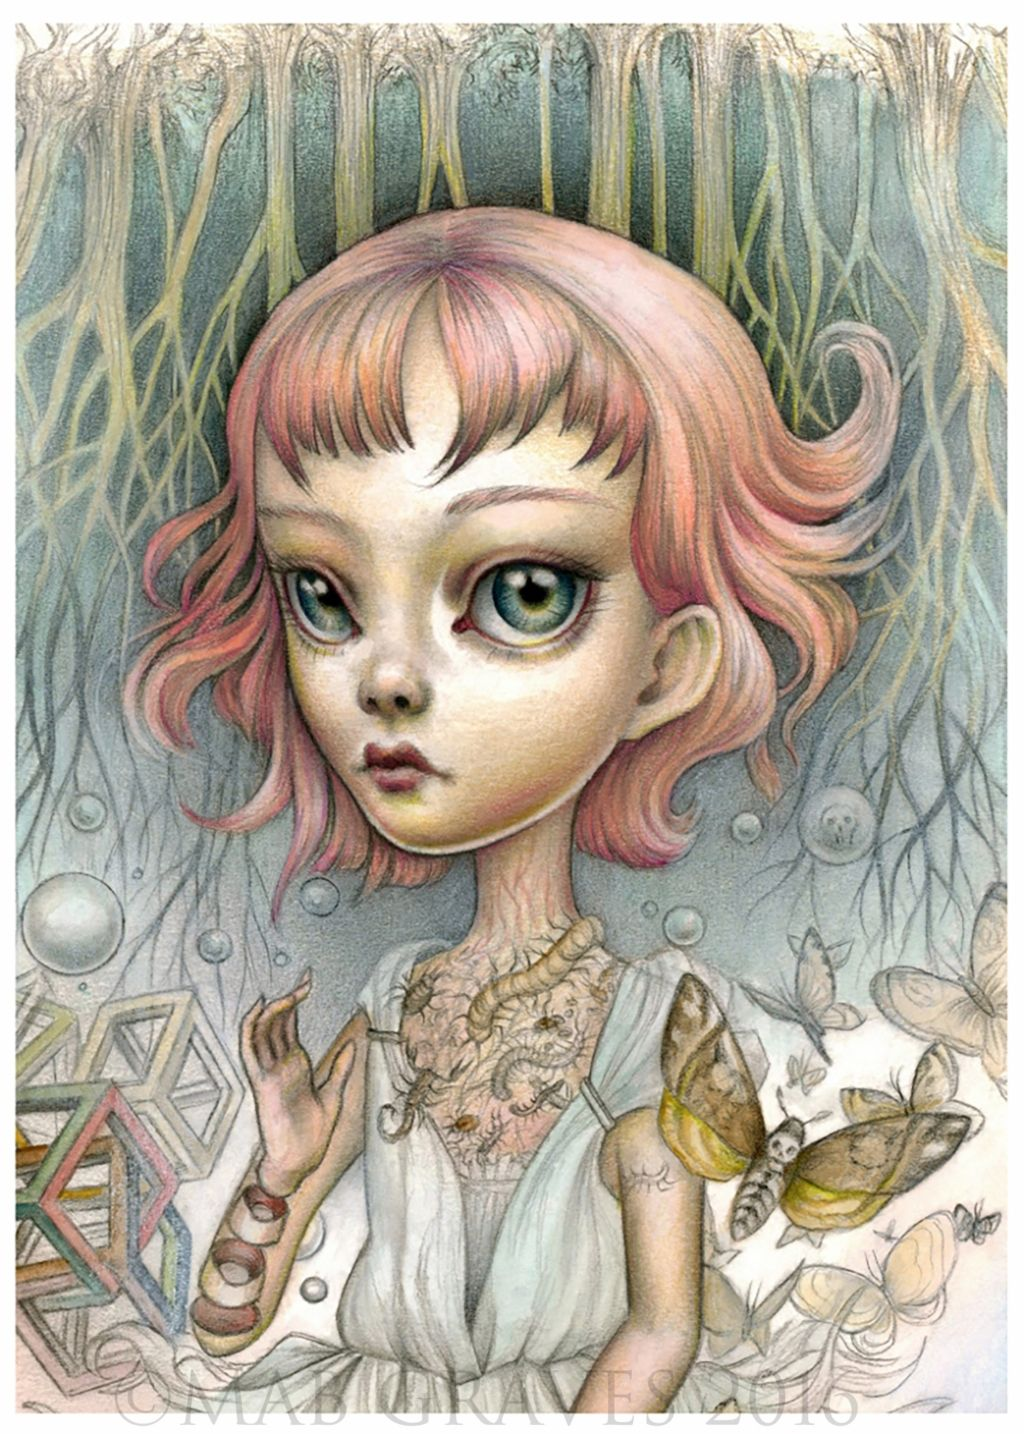 Mab graves a boy that is a girl pop surrealism artist